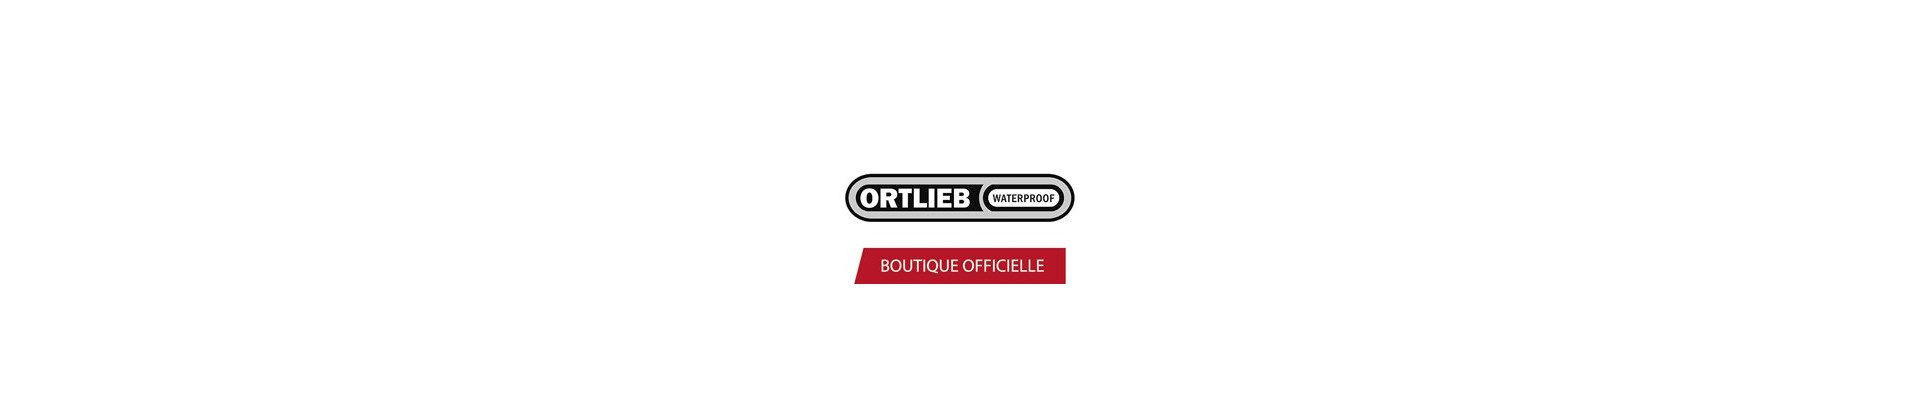 Boutique Ortlieb